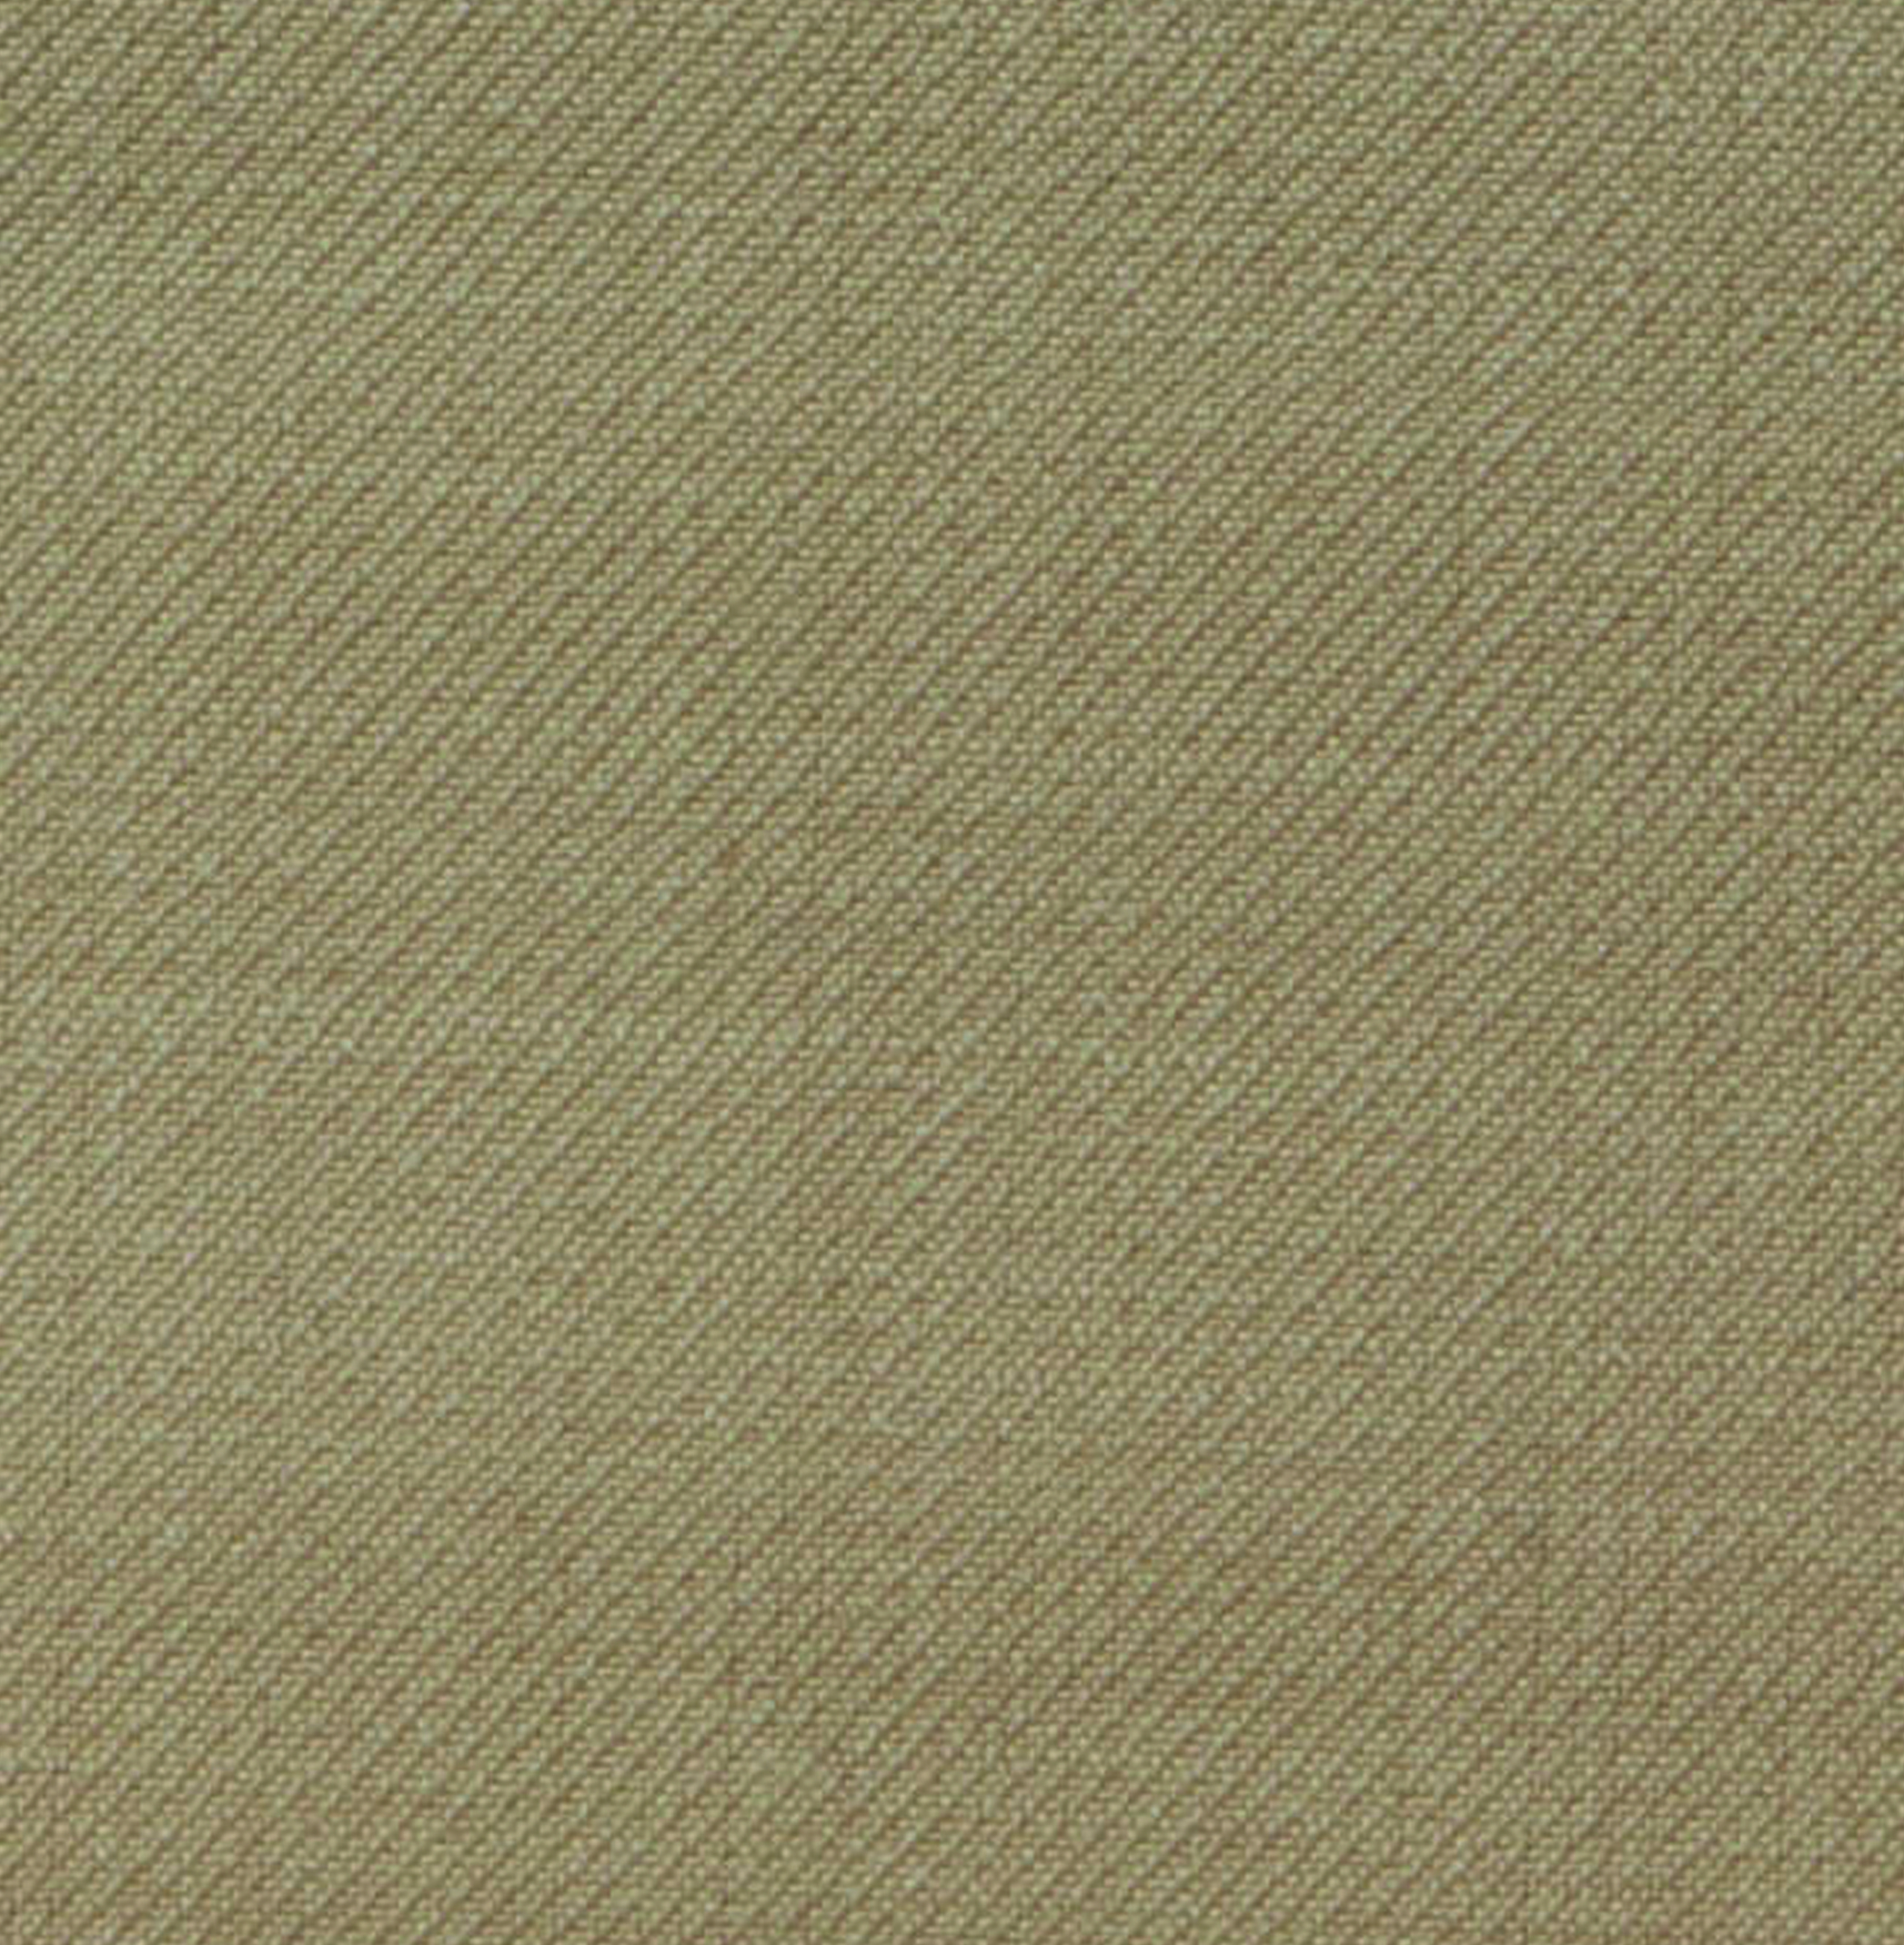 Buy tailor made shirts online - Easy Care Wool Mix - Sand with lining